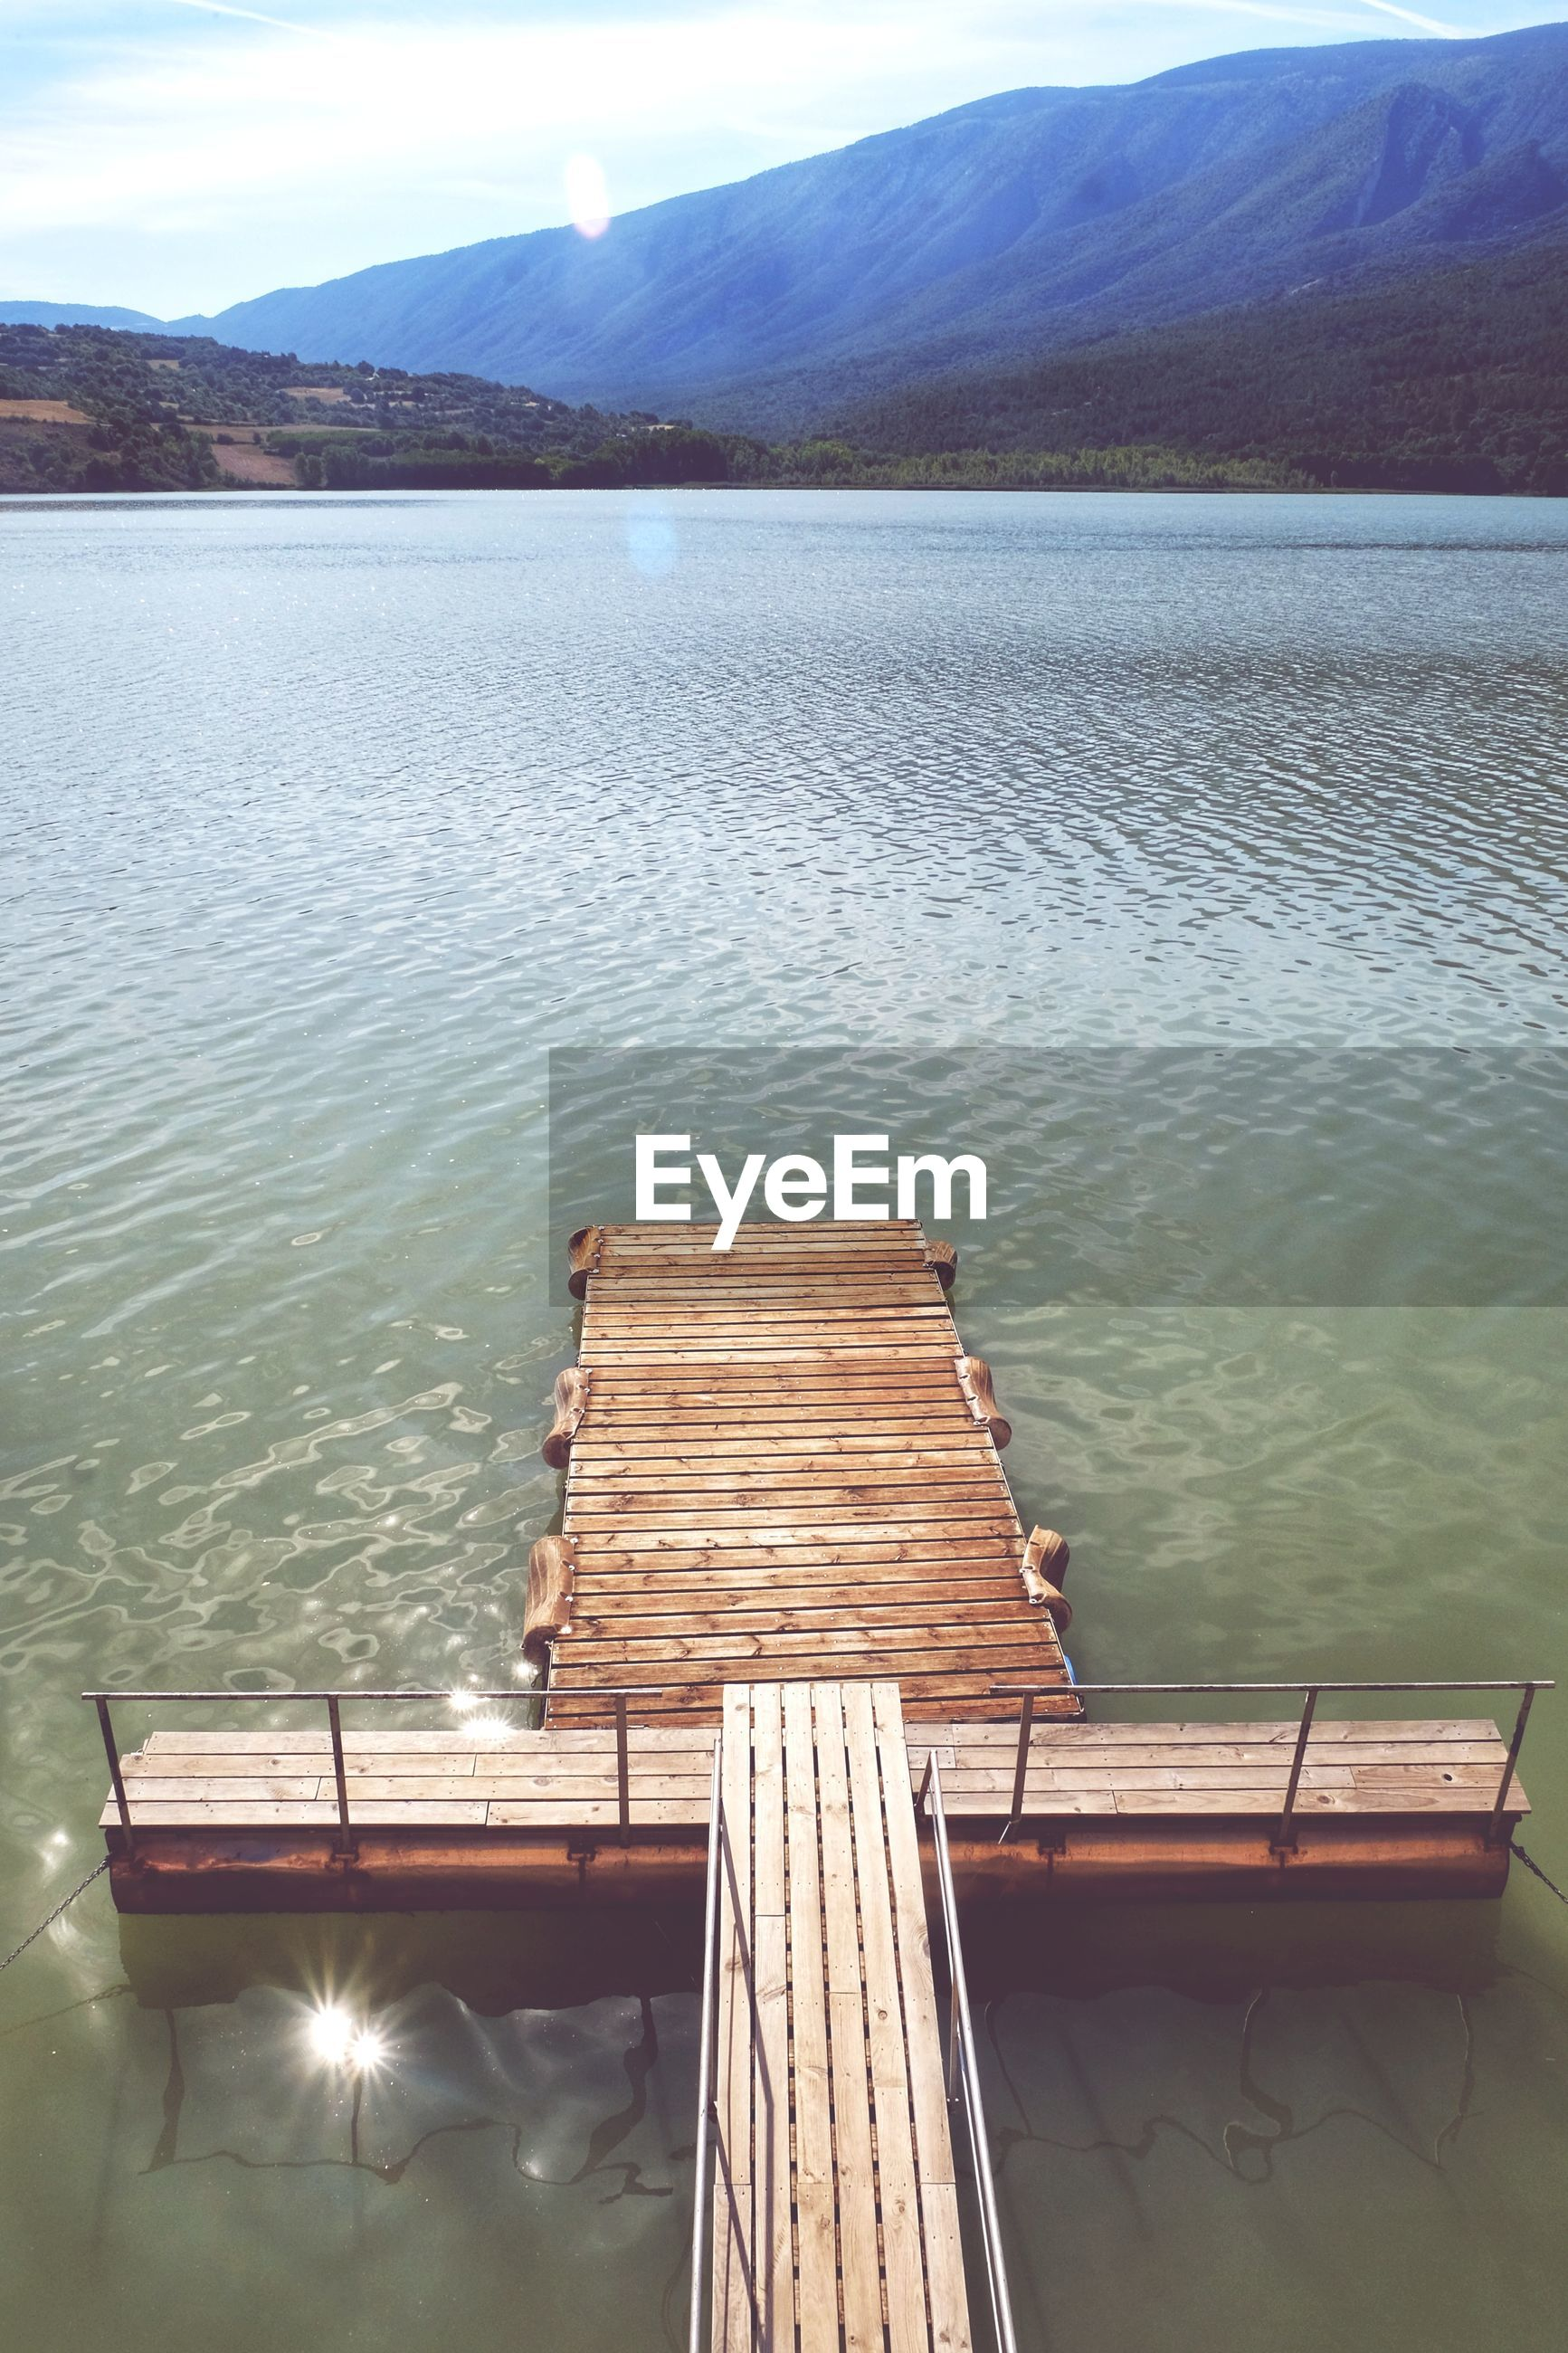 HIGH ANGLE VIEW OF WOODEN PIER OVER LAKE AGAINST SKY